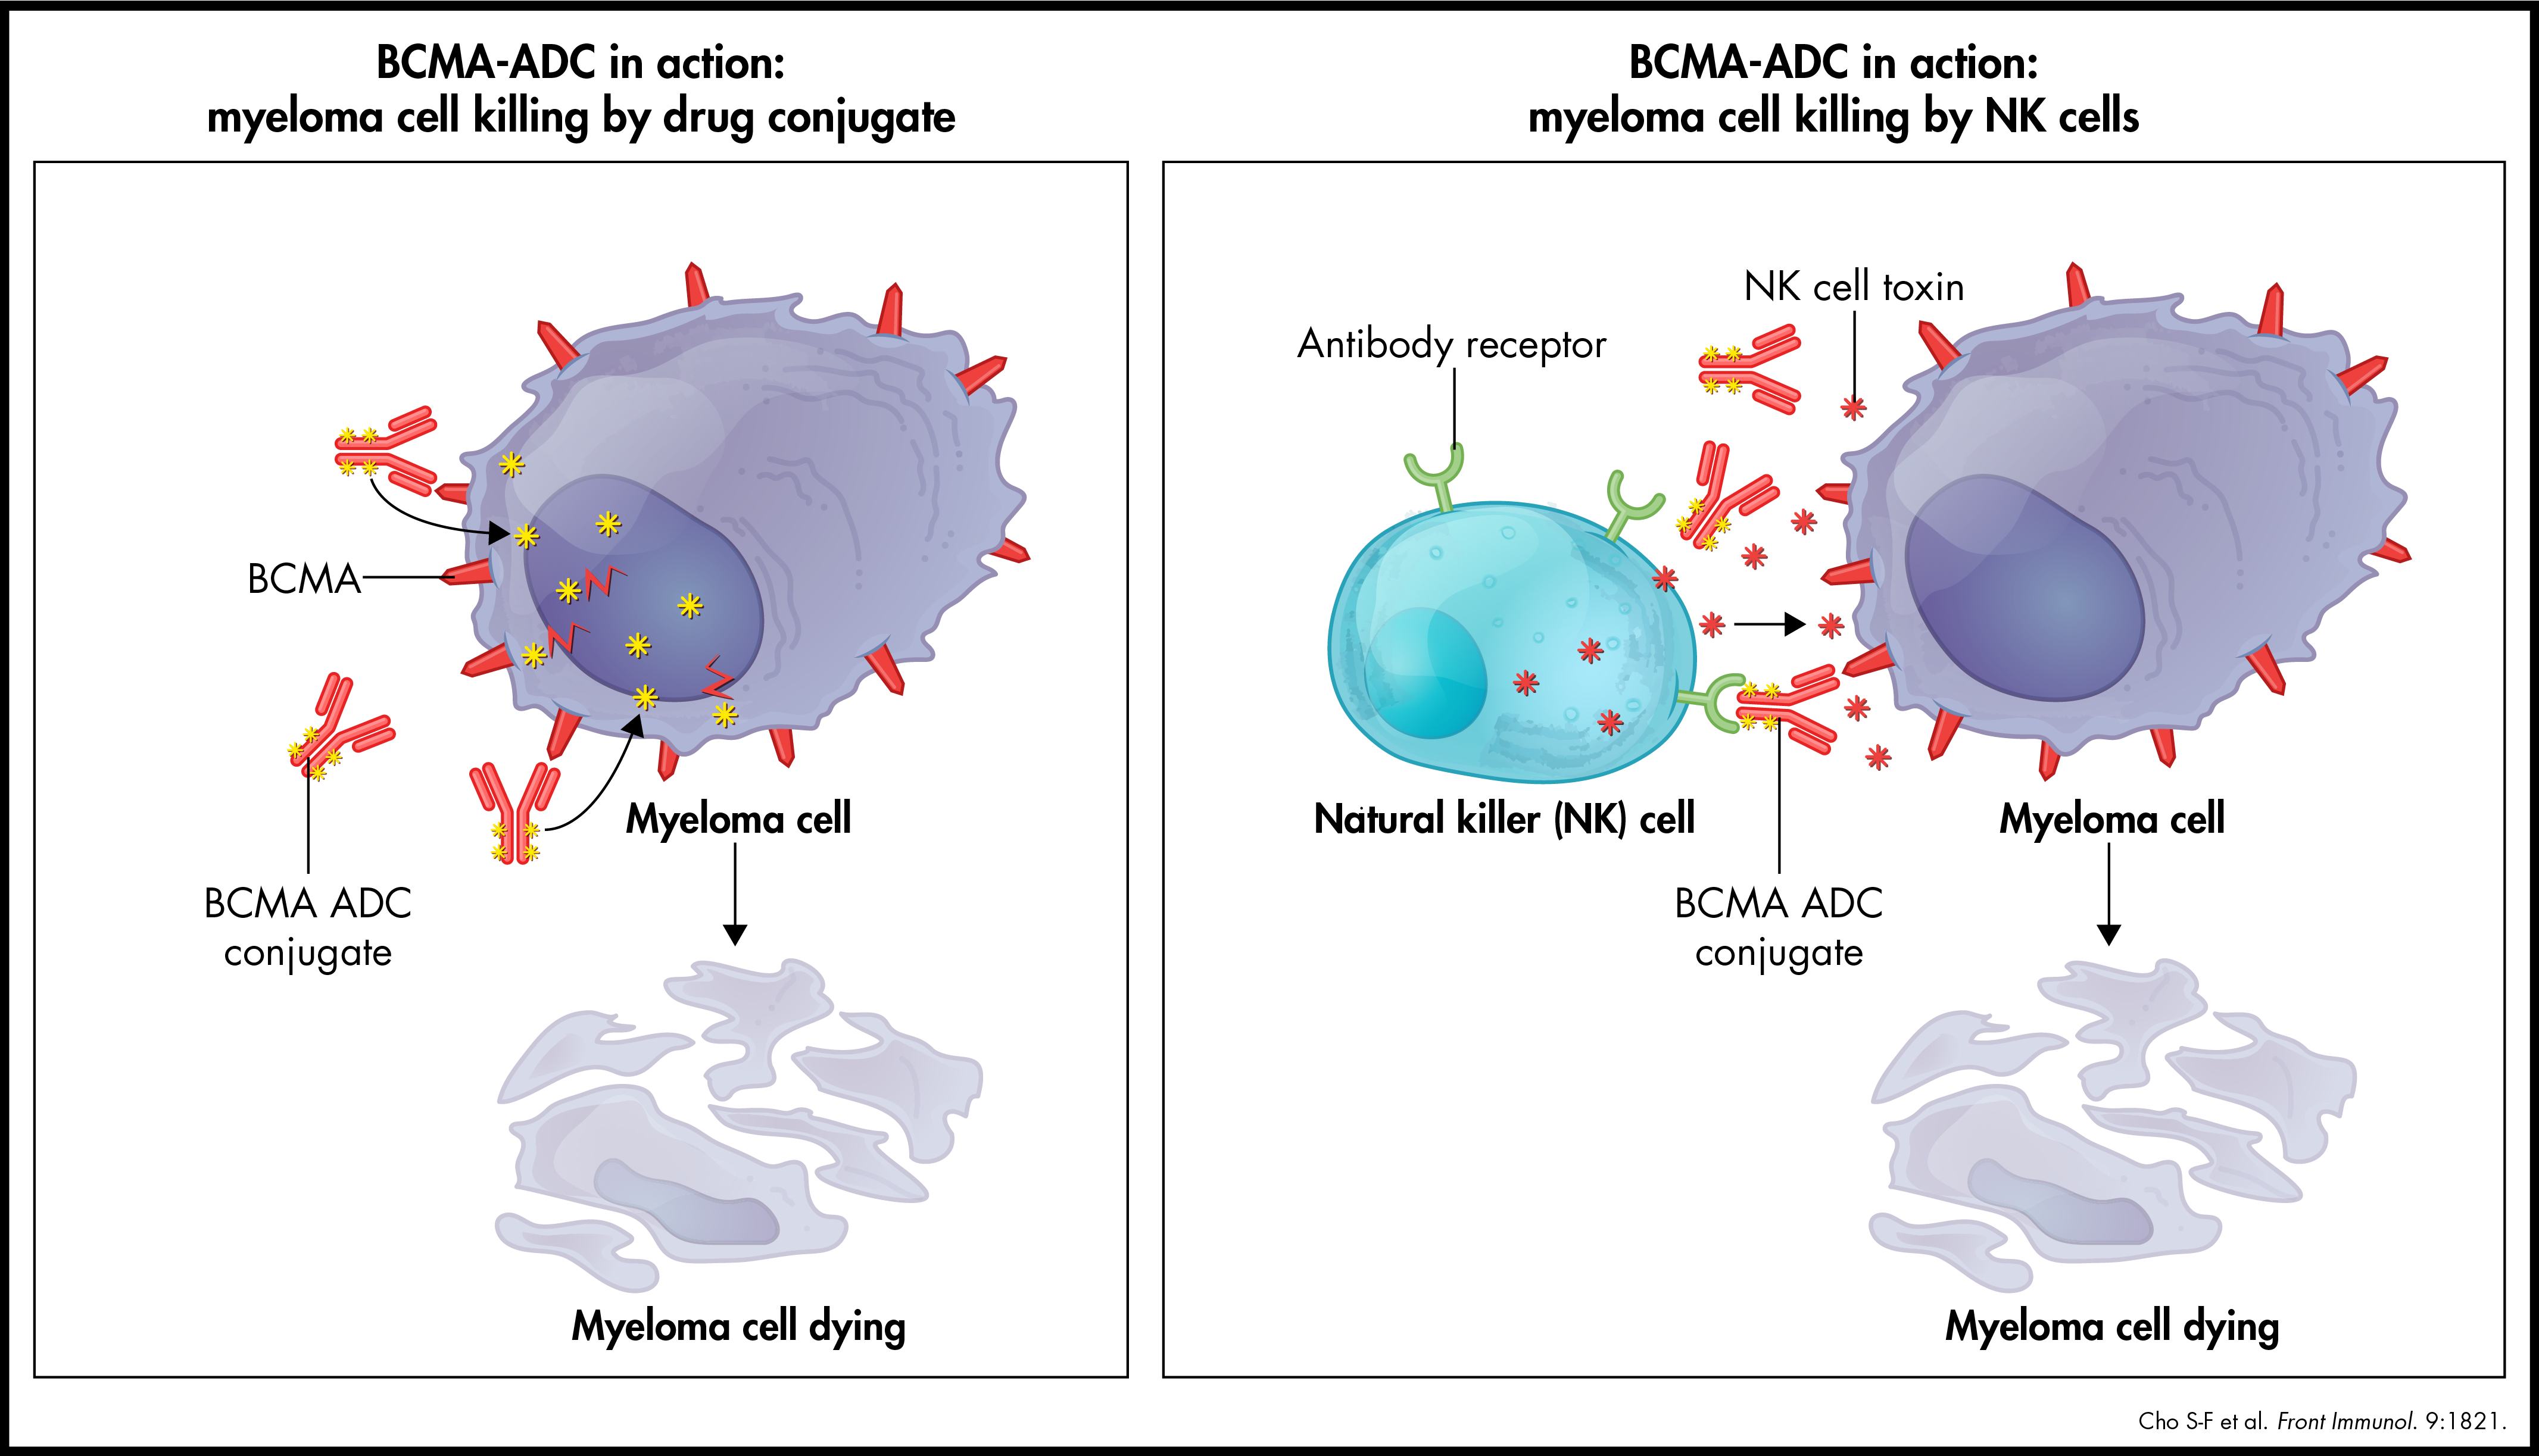 BCMA-ADC in action: myeloma cell killing by drug conjugate & NK cells